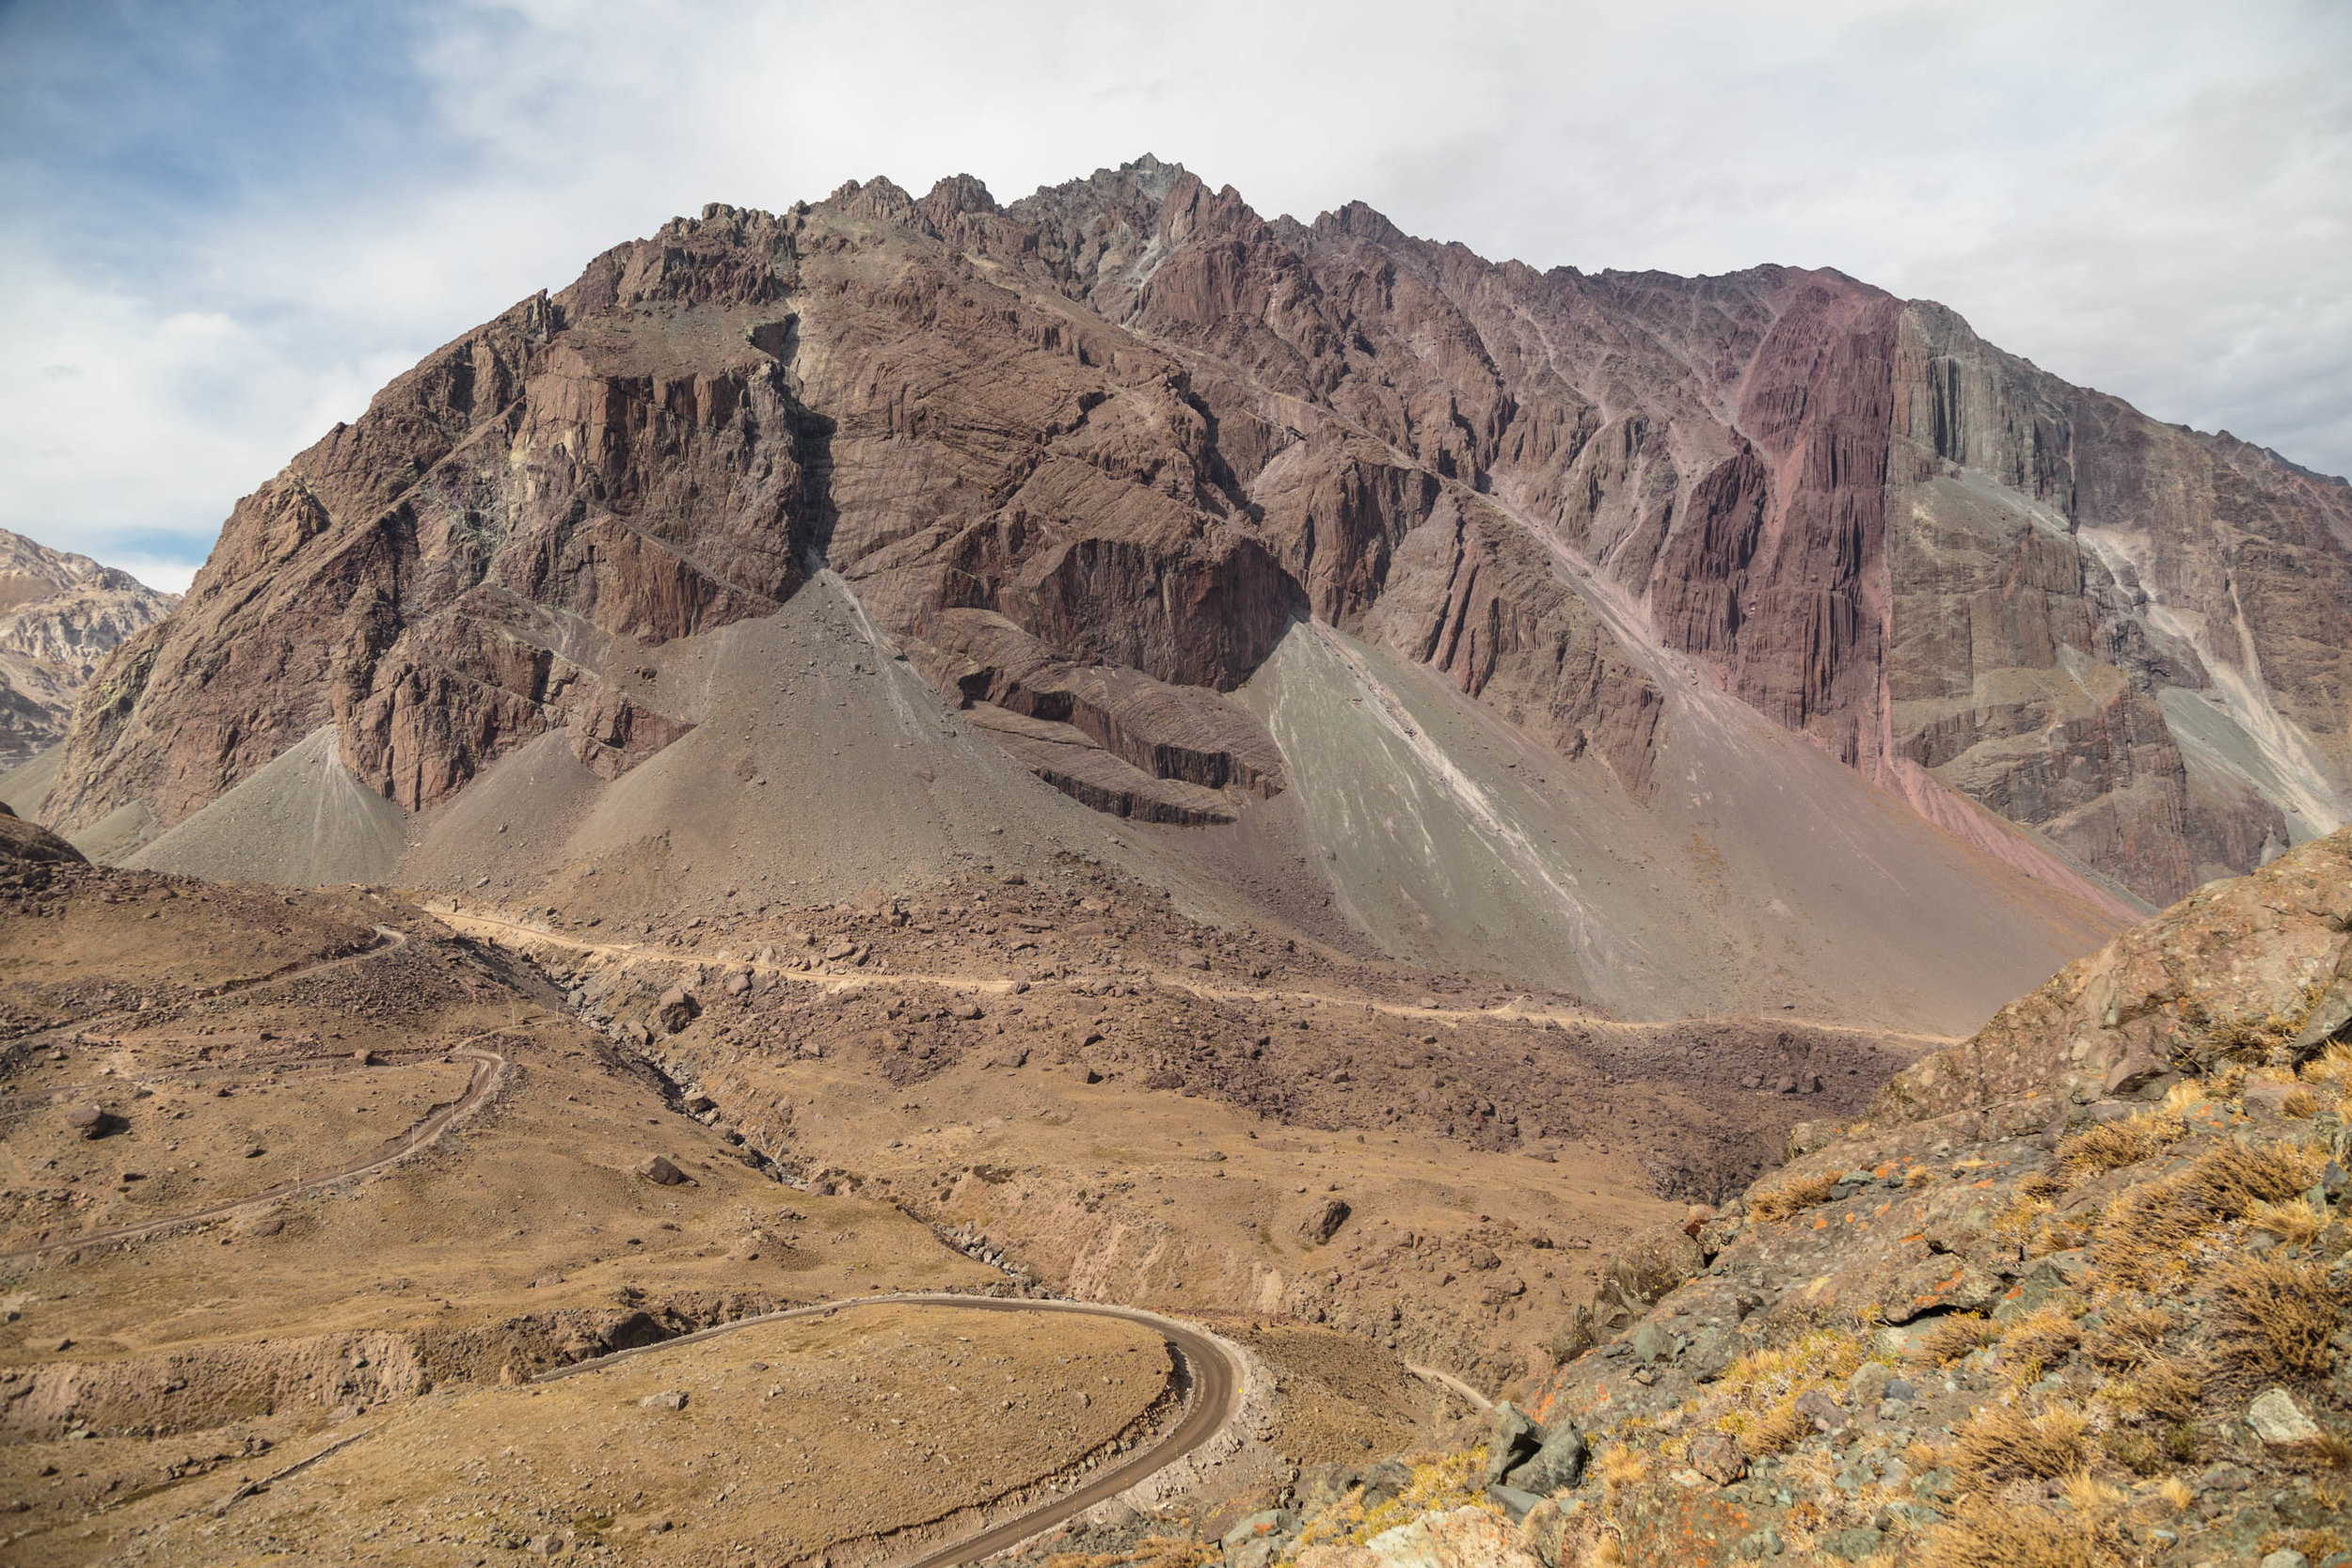 Andes in the Cajón del Maipo. Pictured are stepped failure planes associated with the   Cerro Catedral rockslide   (deposit in foreground).